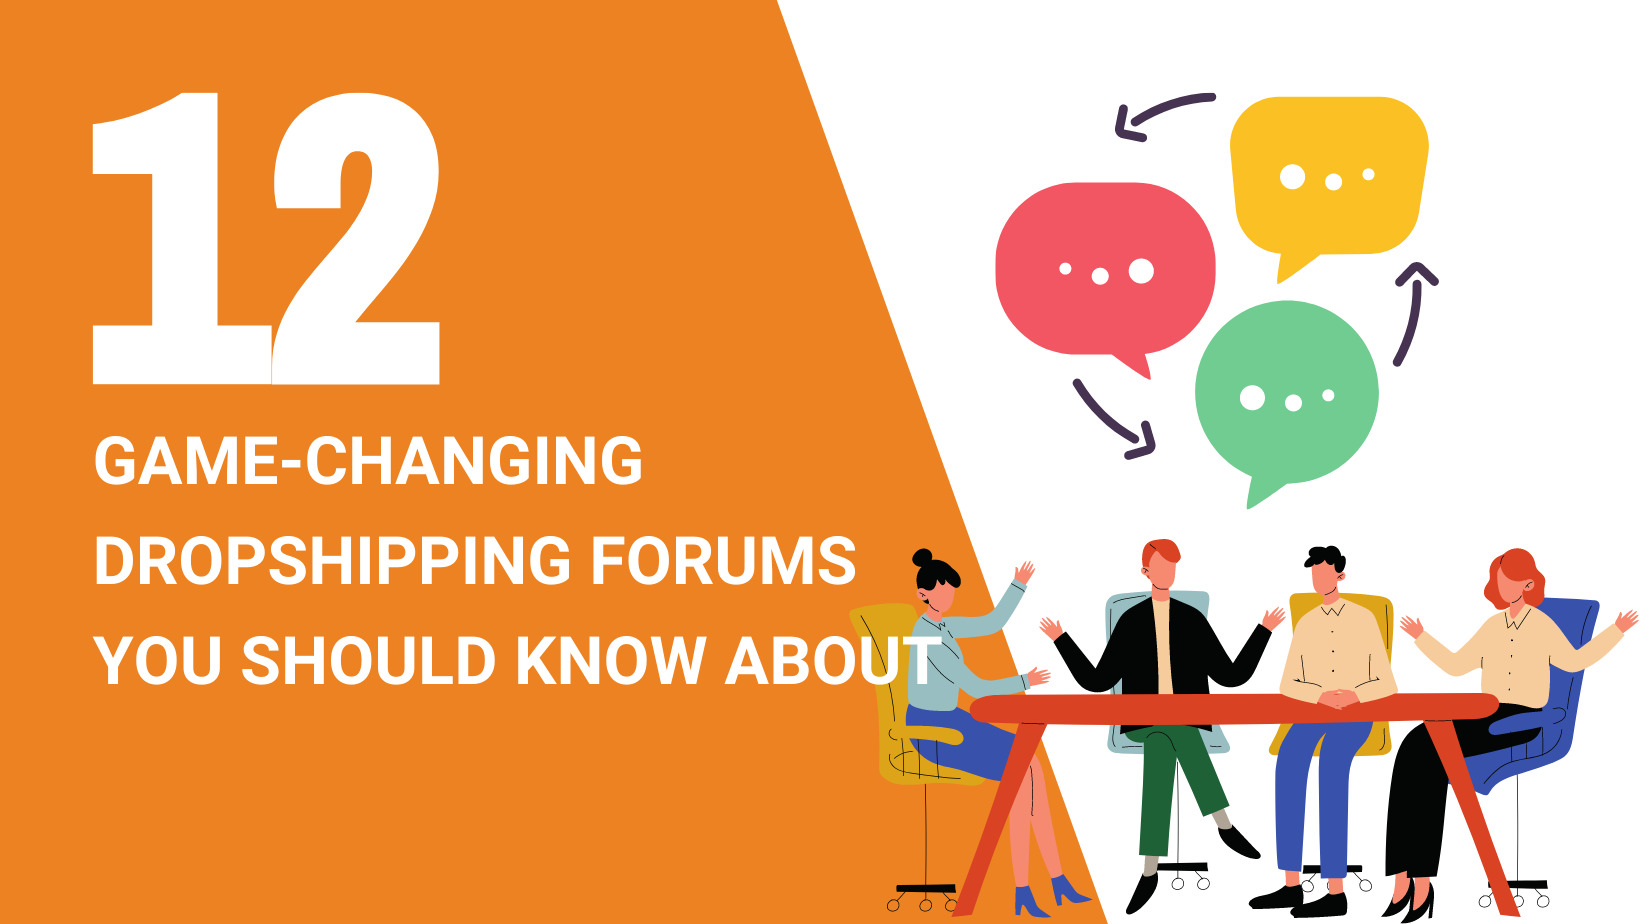 12 GAME-CHANGING DROPSHIPPING FORUMS YOU SHOULD KNOW ABOUT